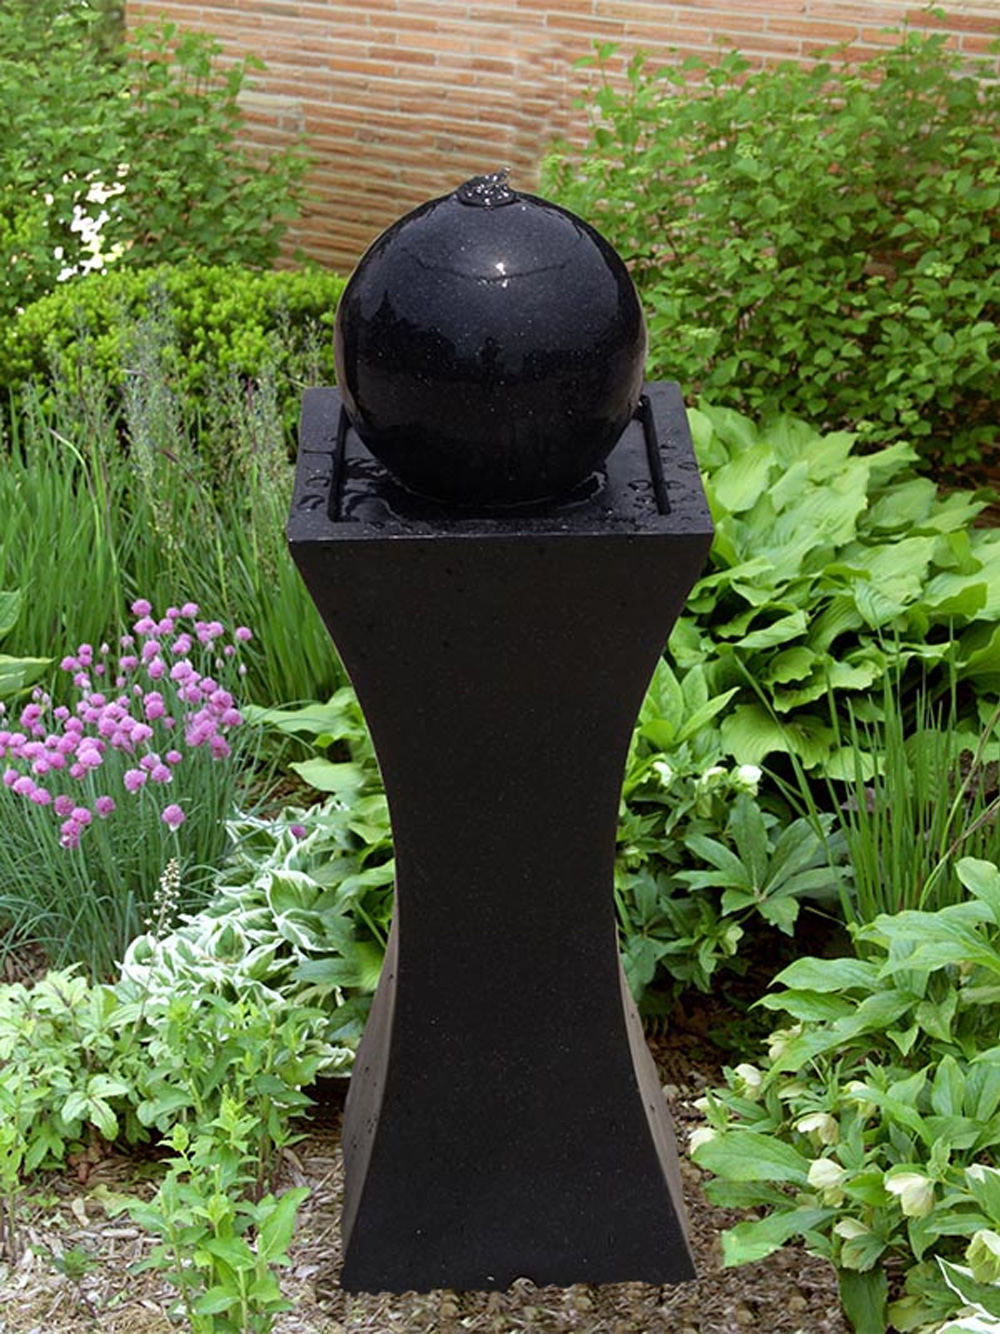 Orba Solar Powered Black Column And Ball Water Feature   0610373927301